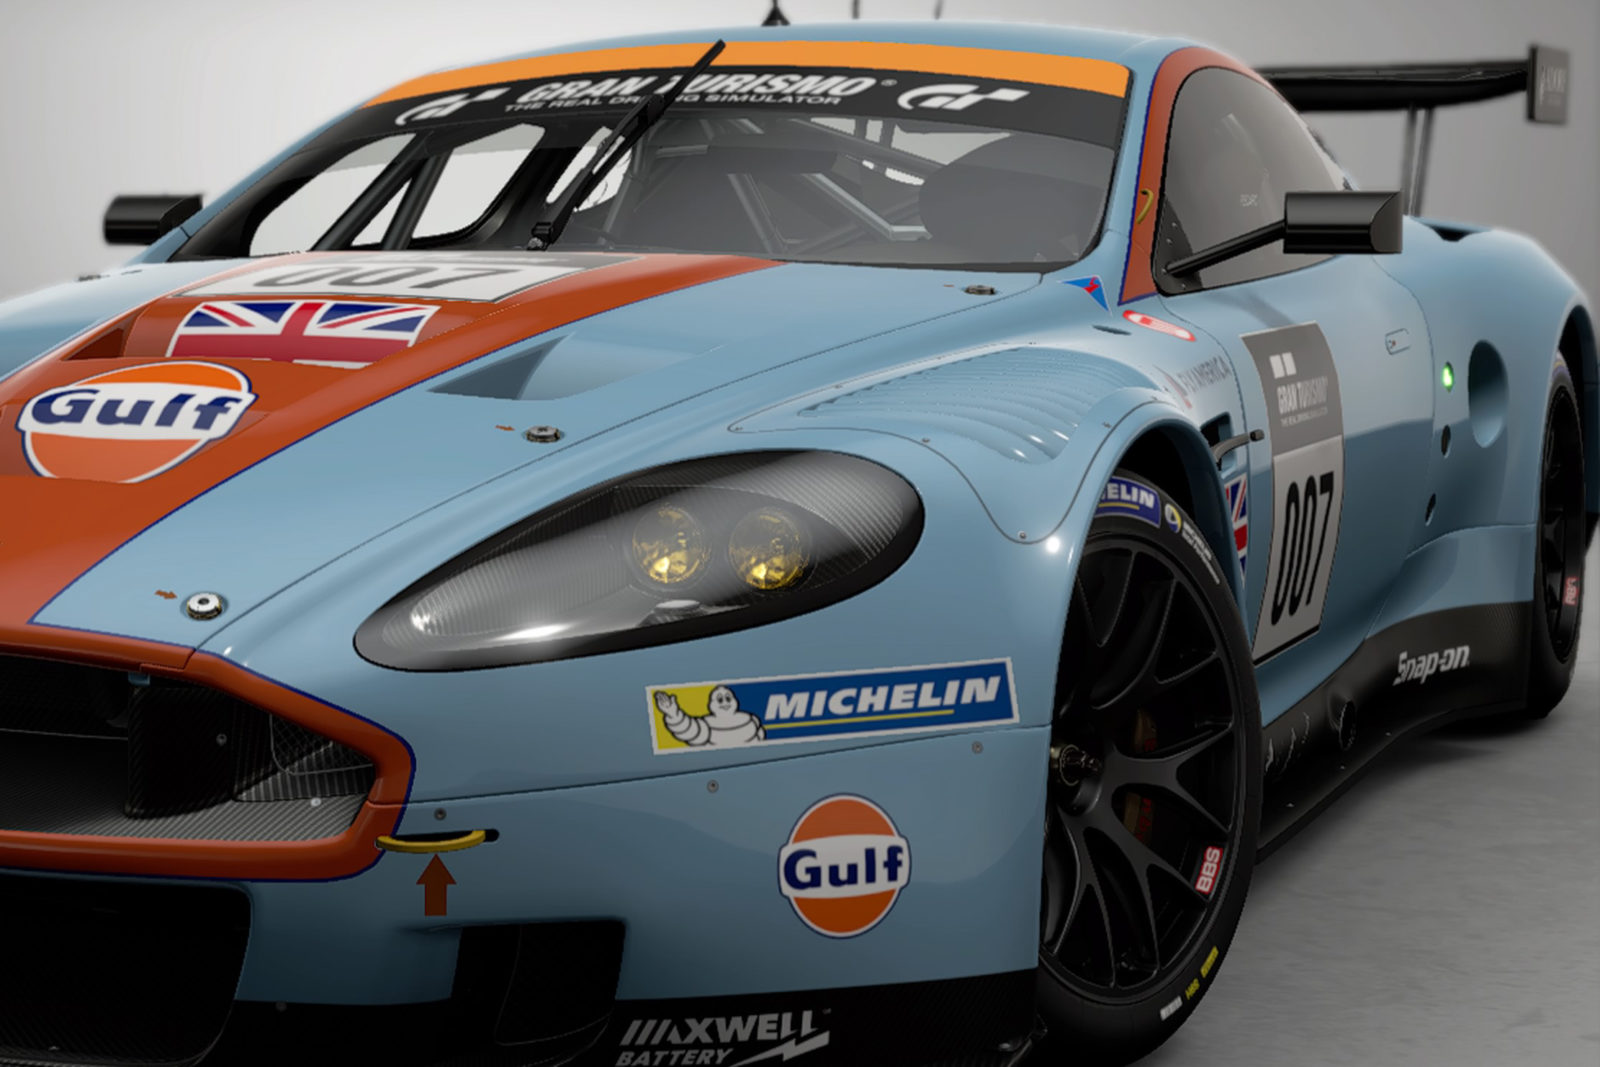 GT SPORT added DBR9.